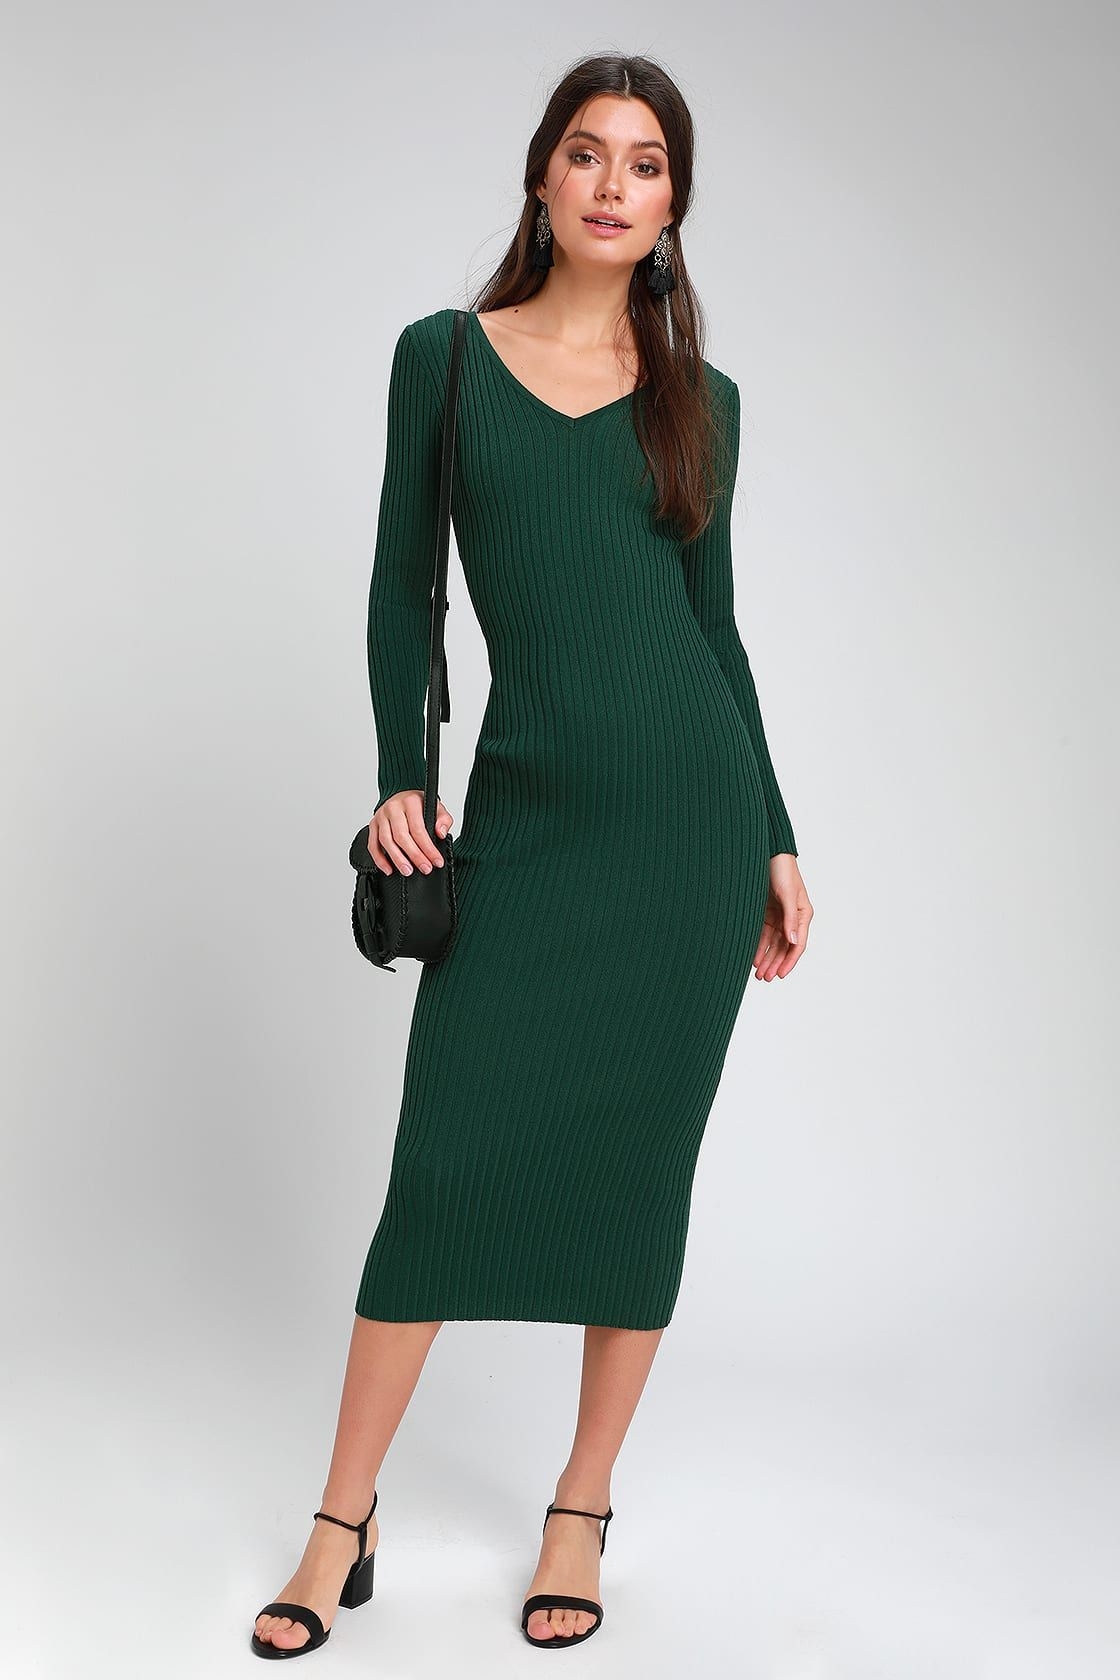 See Your Smile Forest Green Ribbed Bodycon Midi Dress Midi Dress Bodycon Ribbed Bodycon Midi Dress Green Dress Casual [ 1680 x 1120 Pixel ]